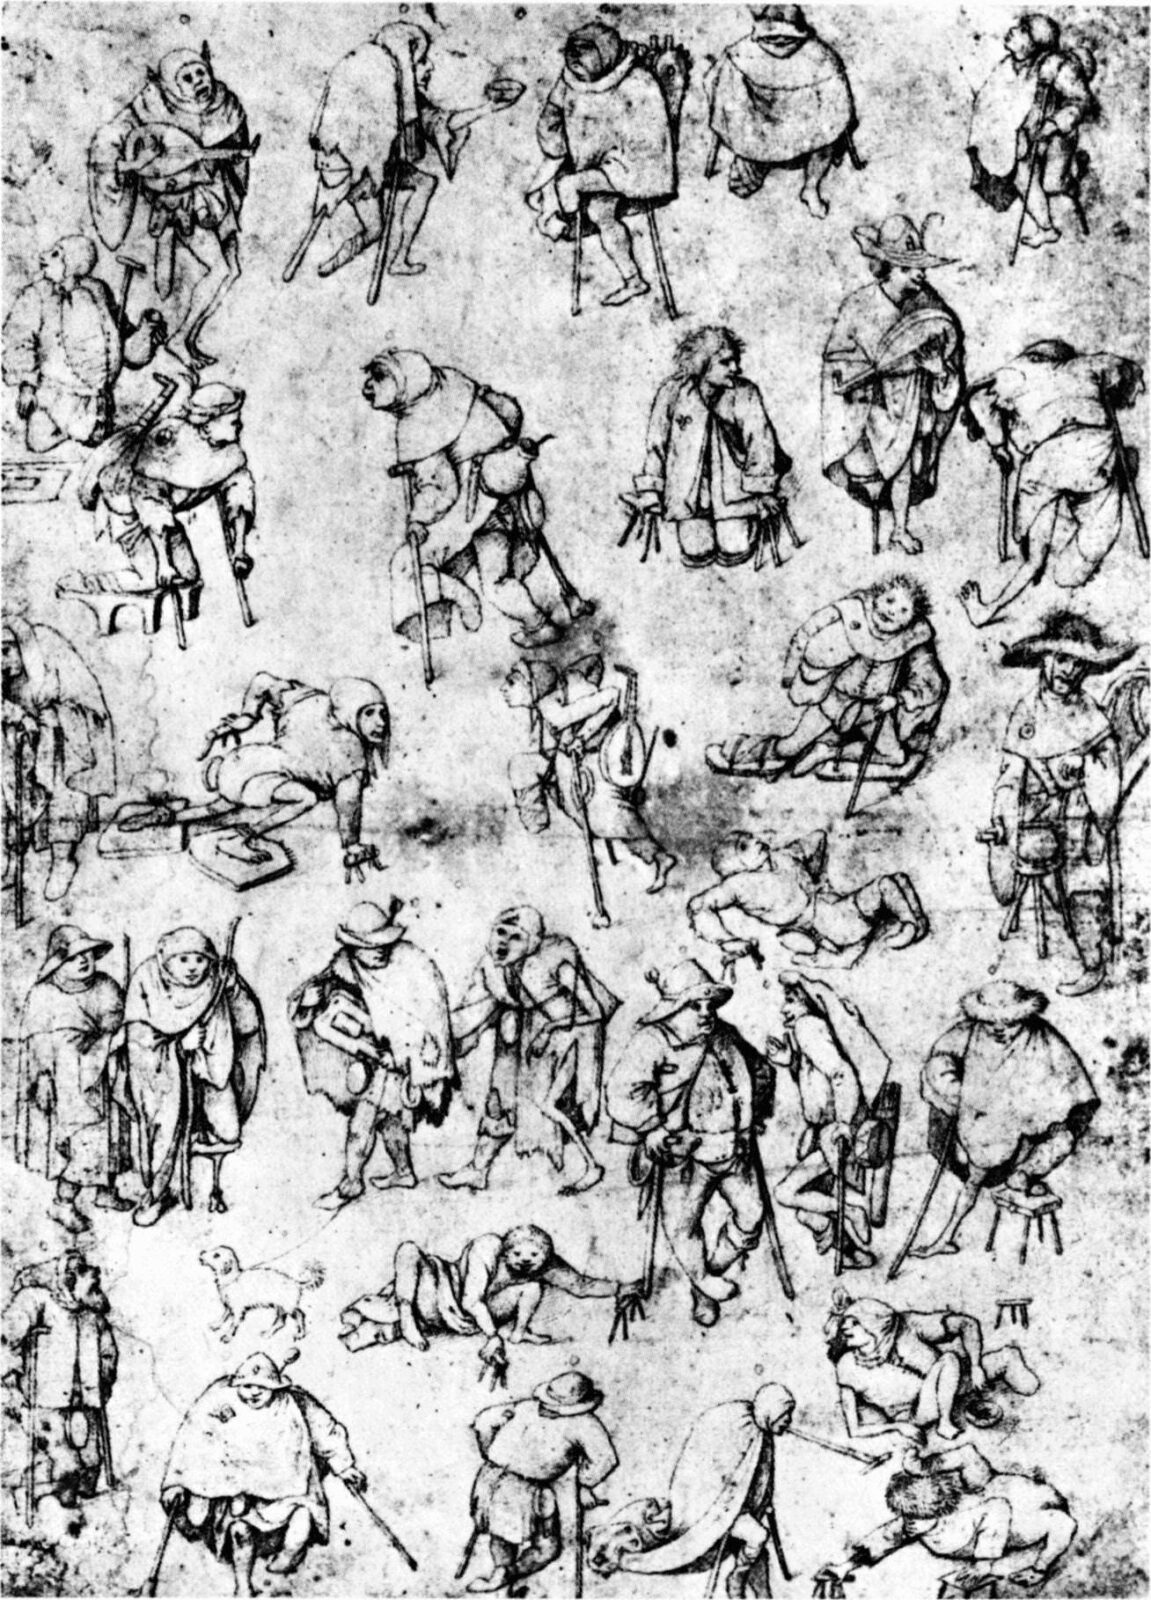 Hieronymus Bosch - Procession of Cripples